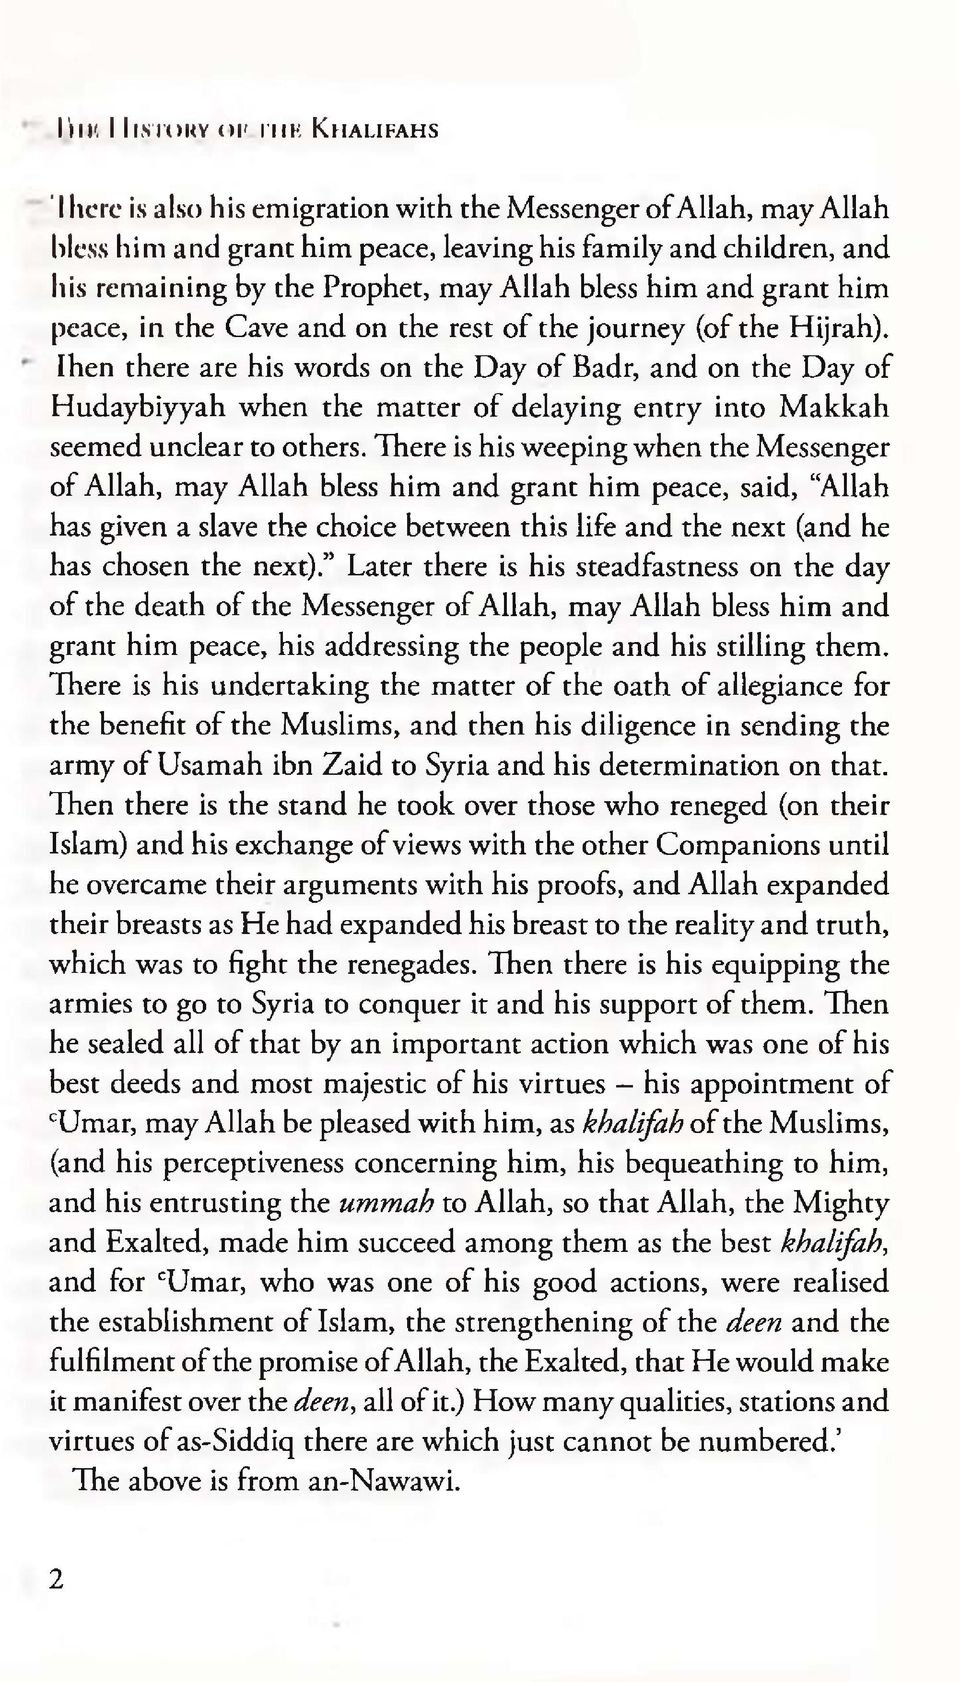 Ihen there are his words on the Day of Badr, and on the Day of Hudaybiyyah when the matter of delaying entry into Makkah seemed unclear to others.